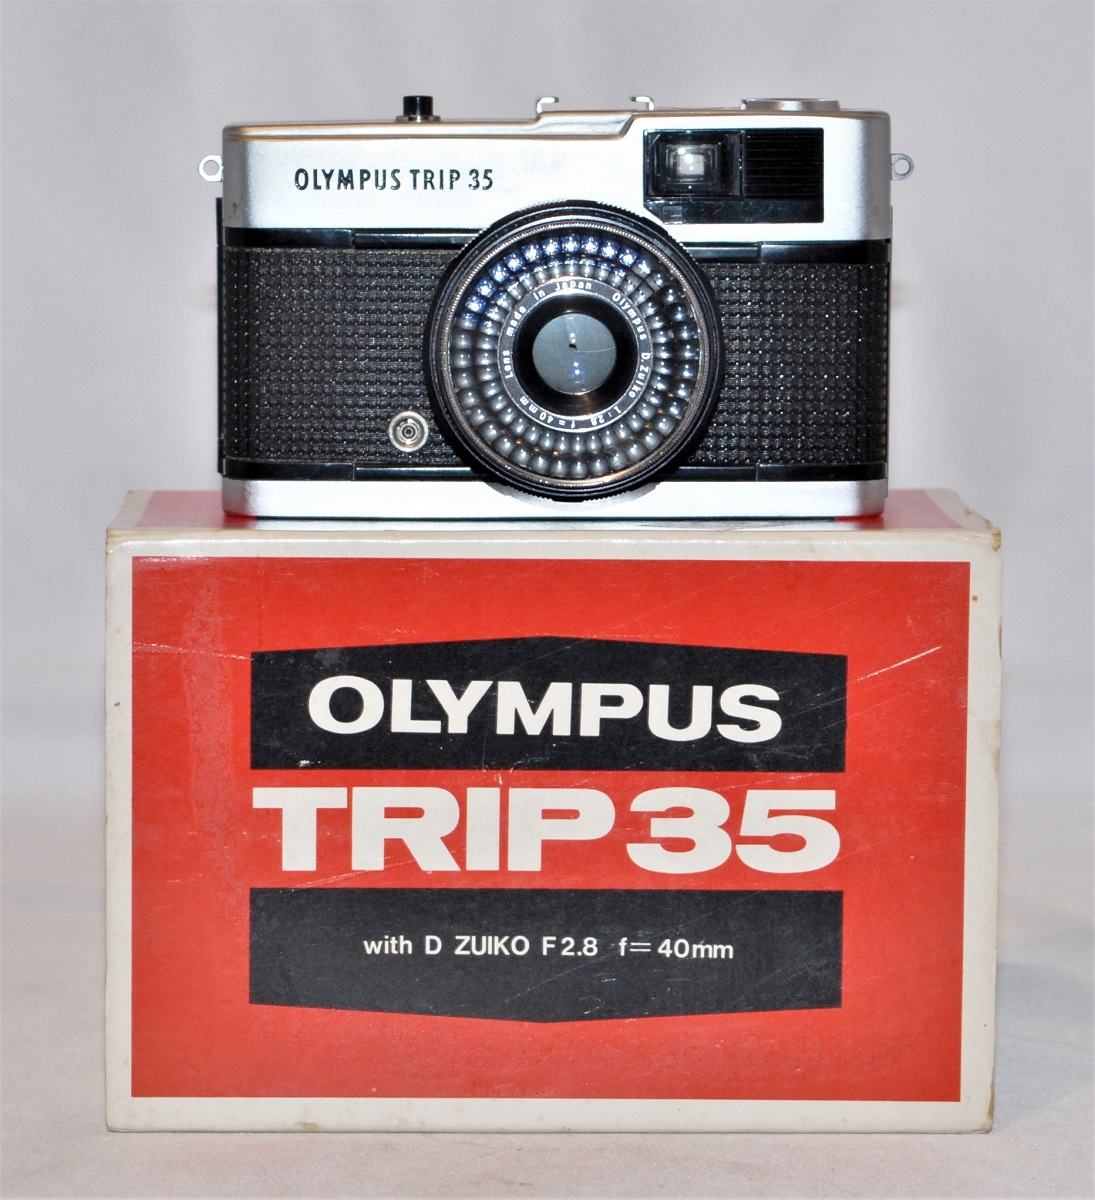 Olympus Trip 35. Excellent condition. Includes lens cap, box, and case. SOLD